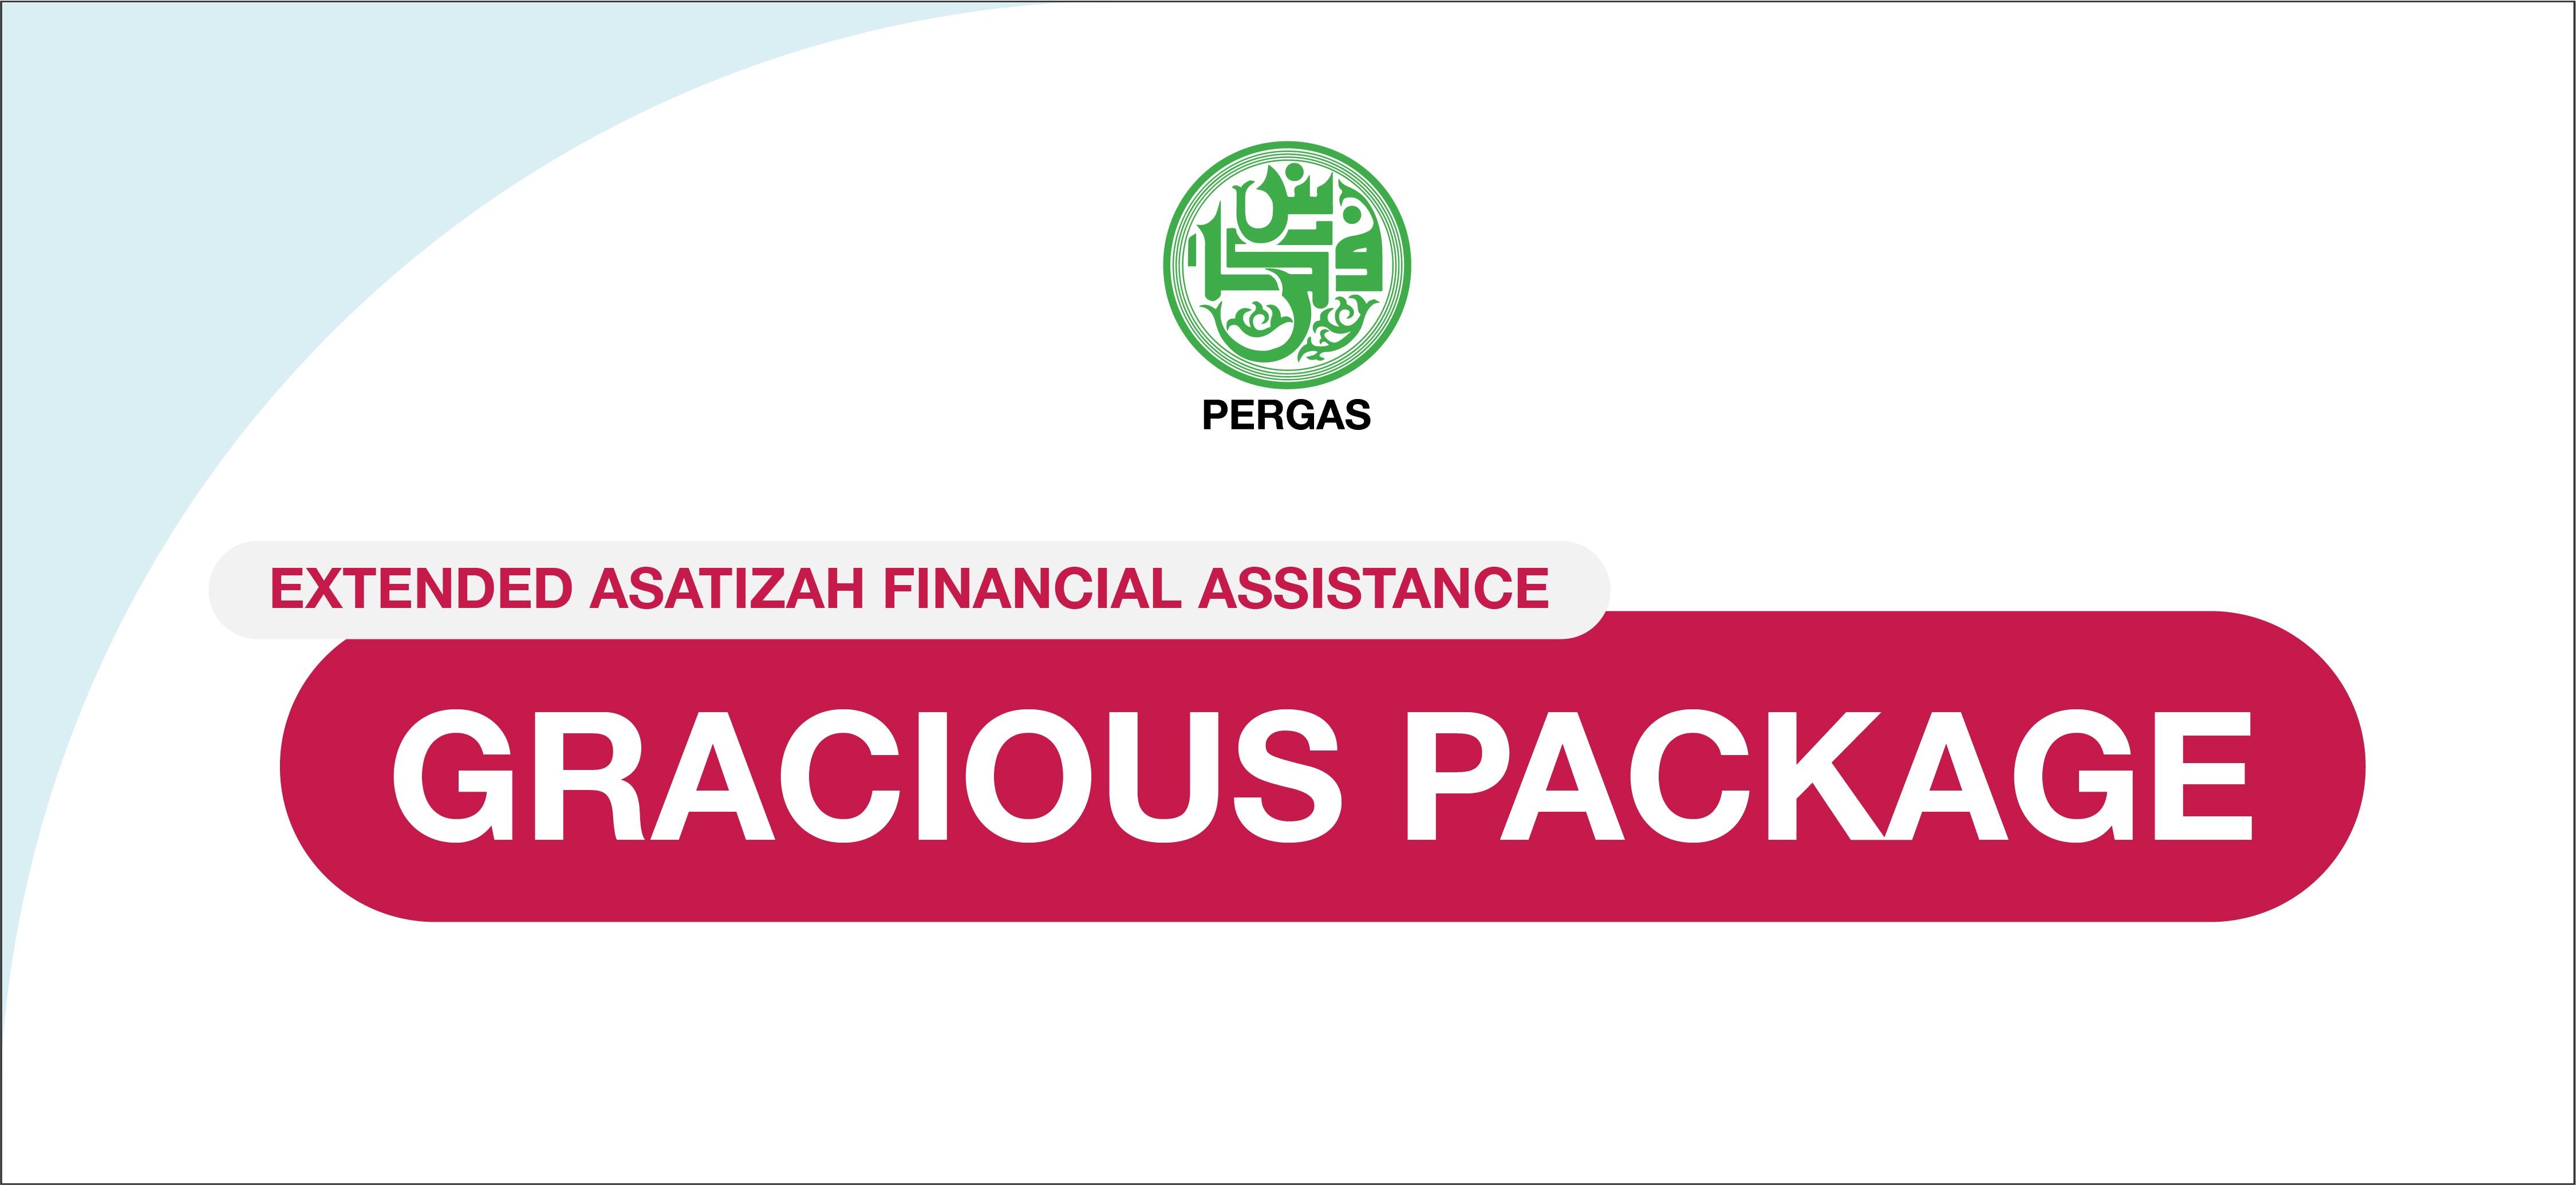 Pergas Gracious Package